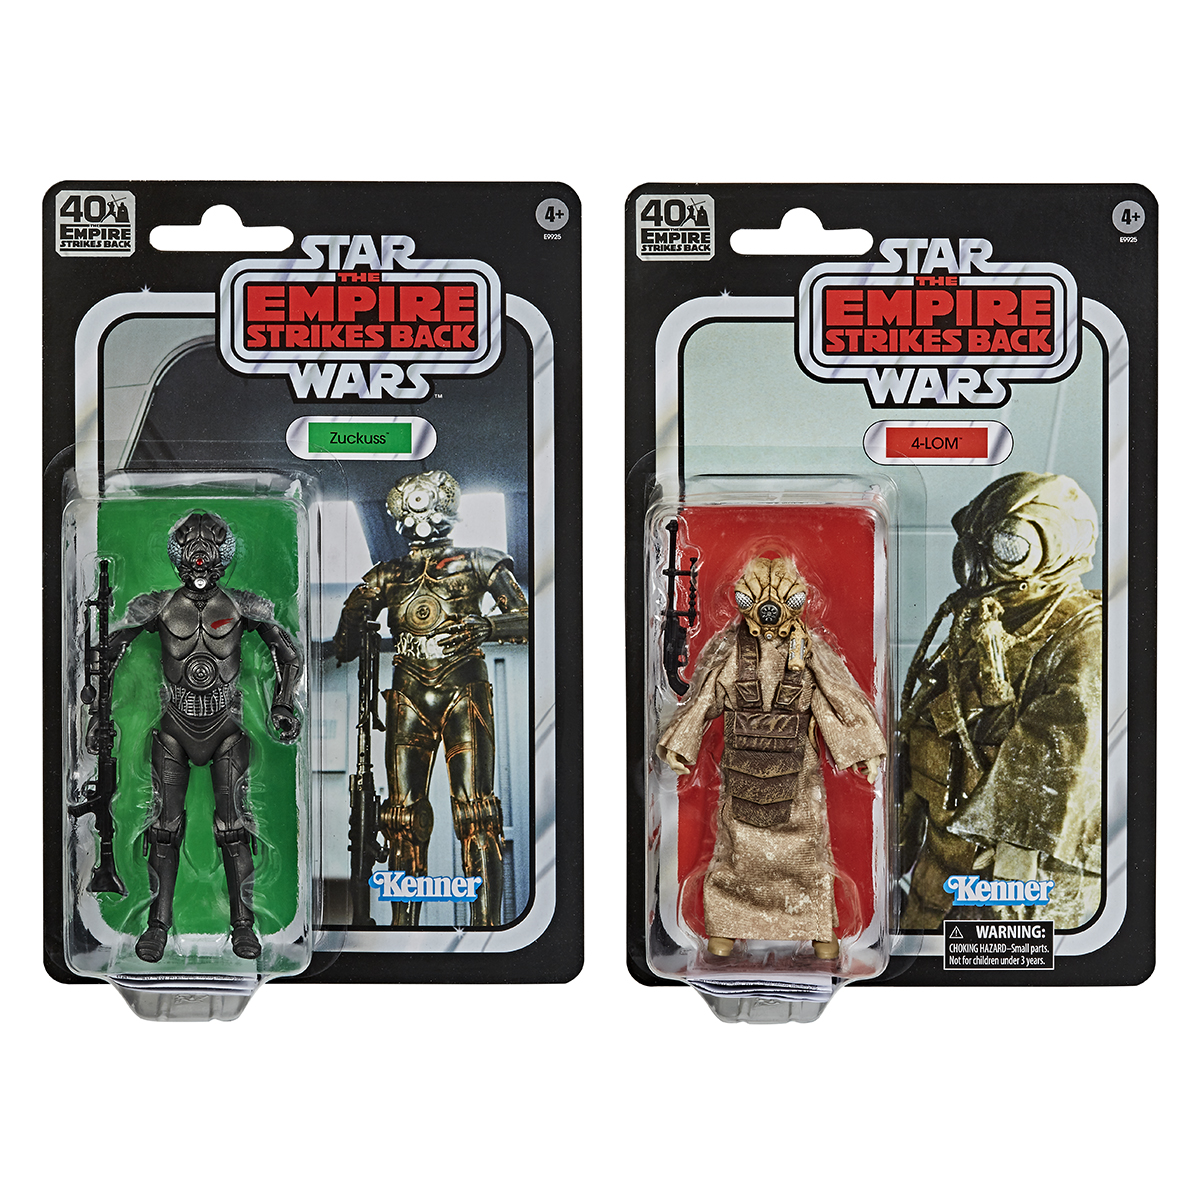 star-wars-the-black-series-6-inch-4-lom-and-zuckuss-figure-2-pack-in-pck-1